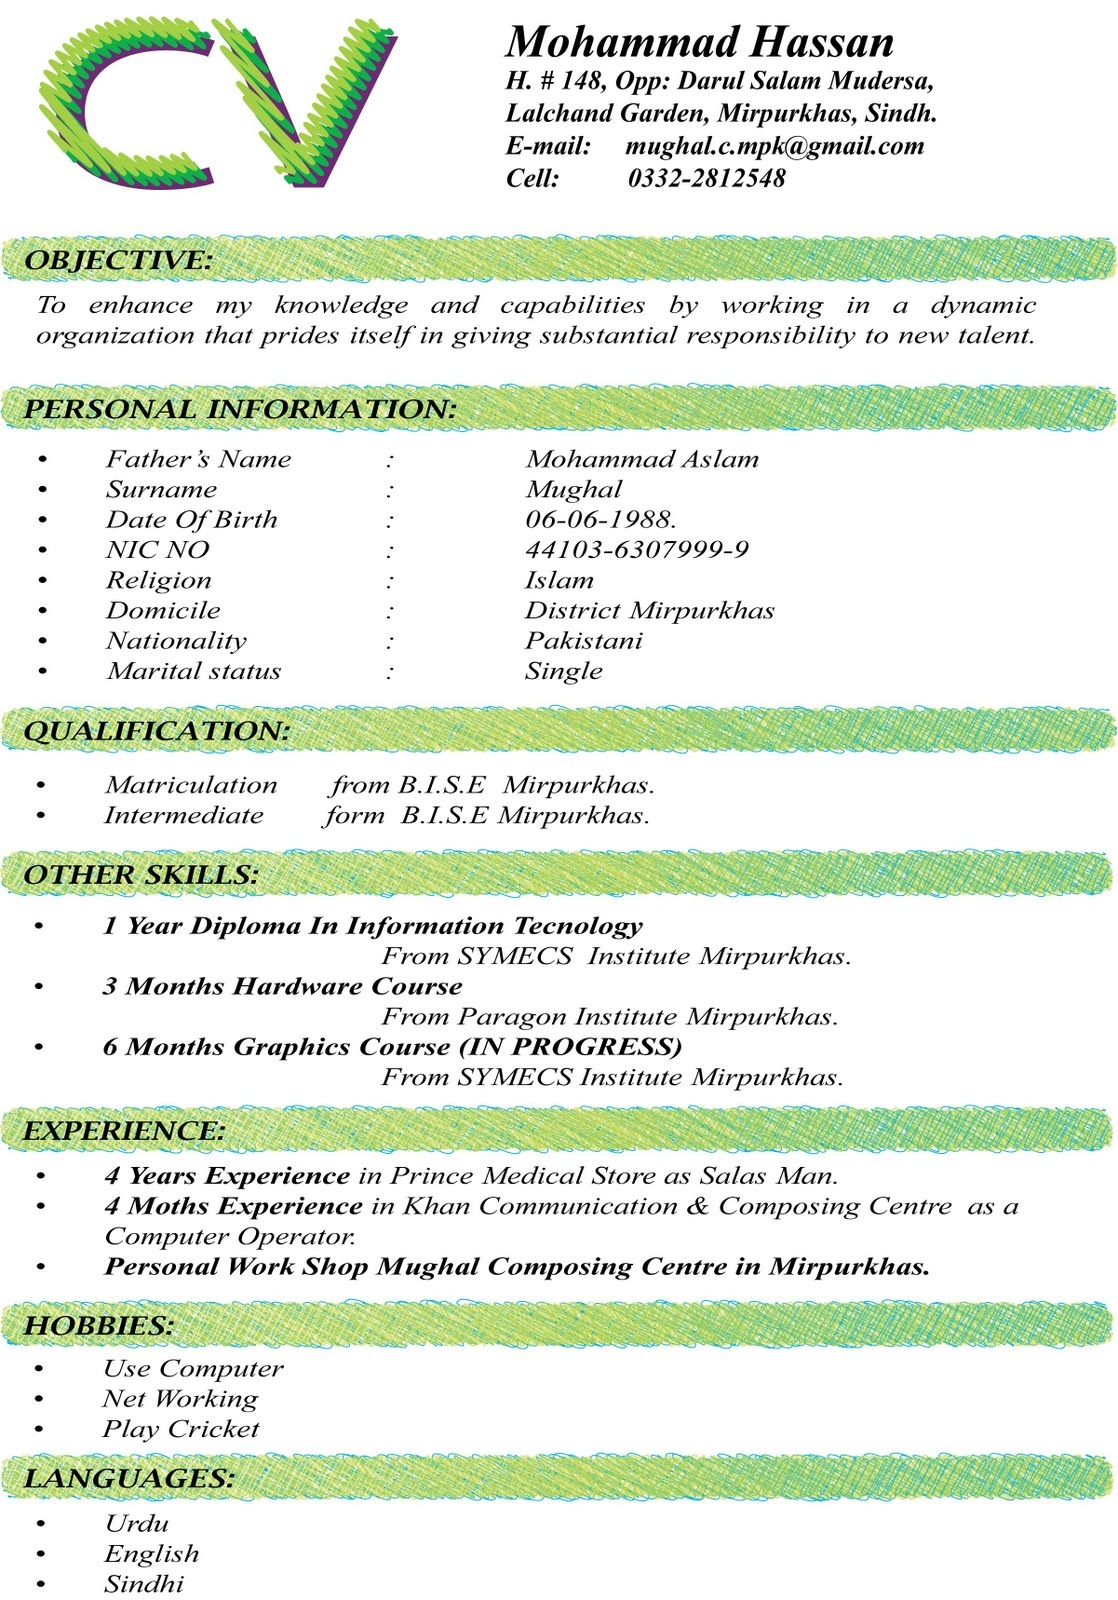 curriculum vitae cover page template resume builder curriculum vitae cover page template curriculum vitae writing tips and templates businessballs curriculum vitae format 12